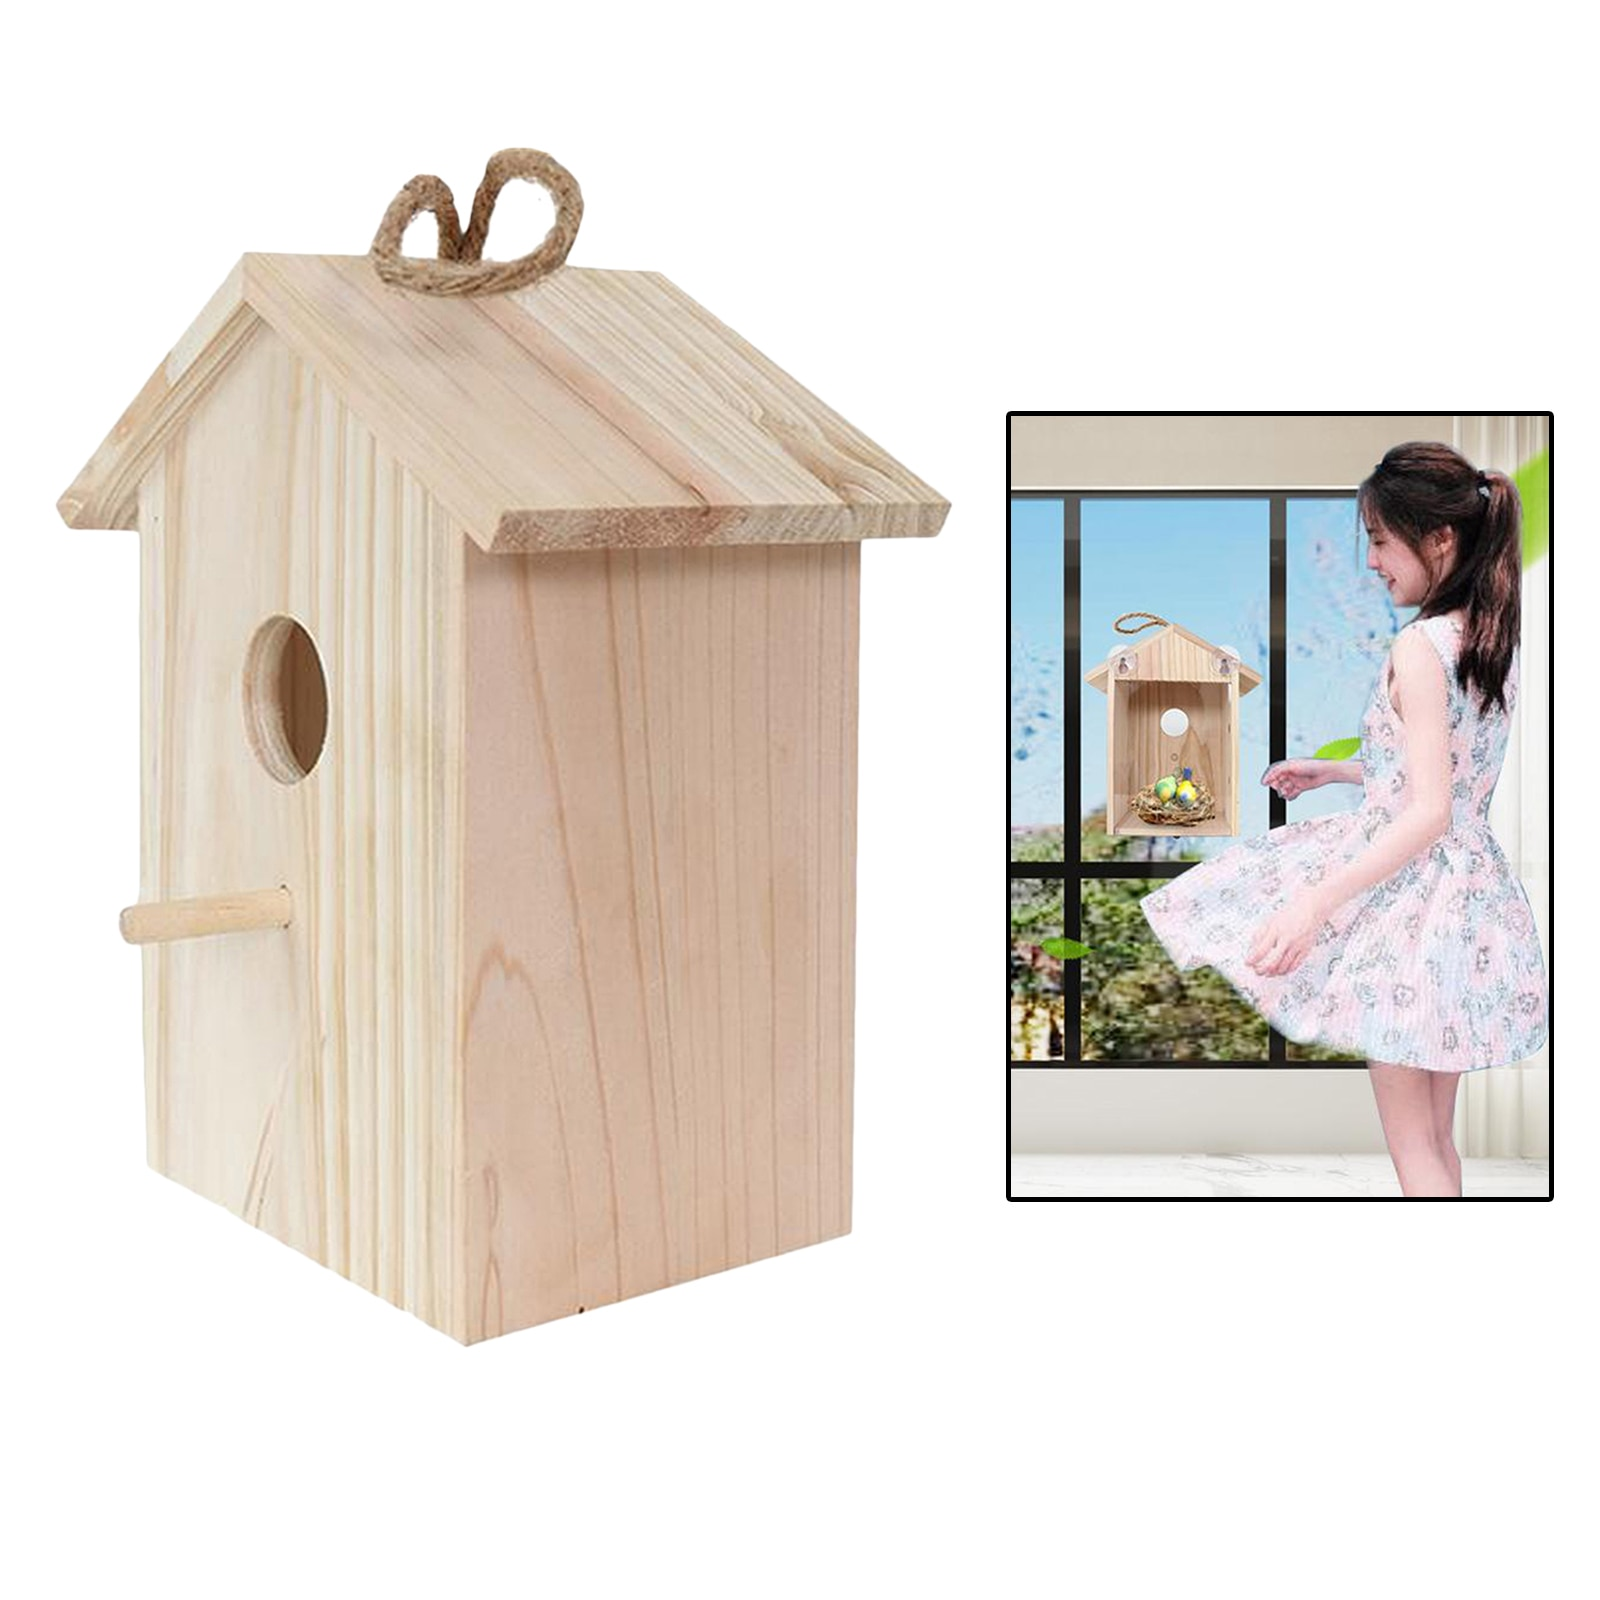 Suction Up Window Bird House Unfinished Wooden Birdcage for Bird Watching